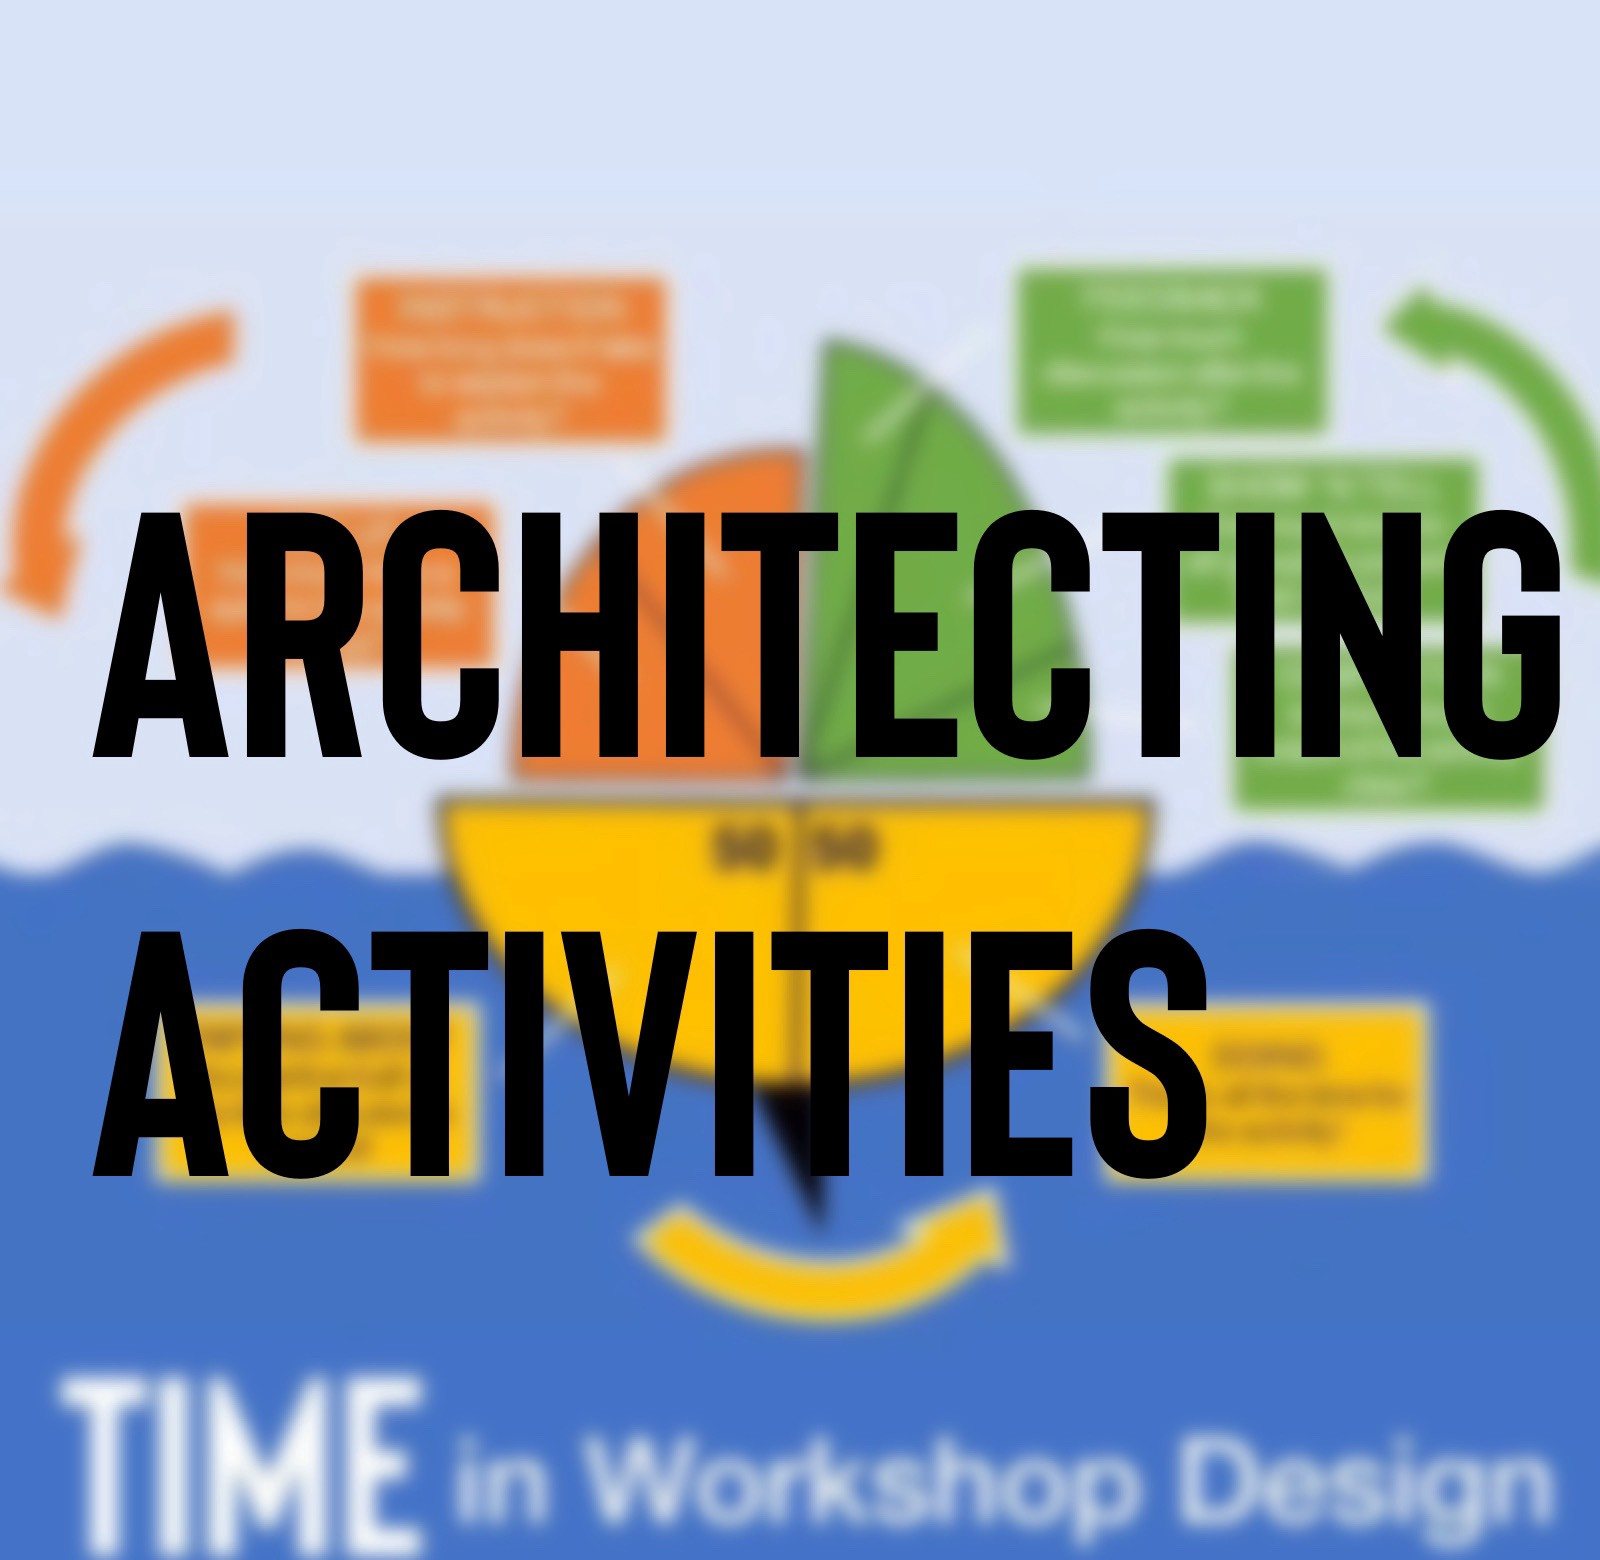 Architecting Activities—image of tool for planing time allocation in workshop activities